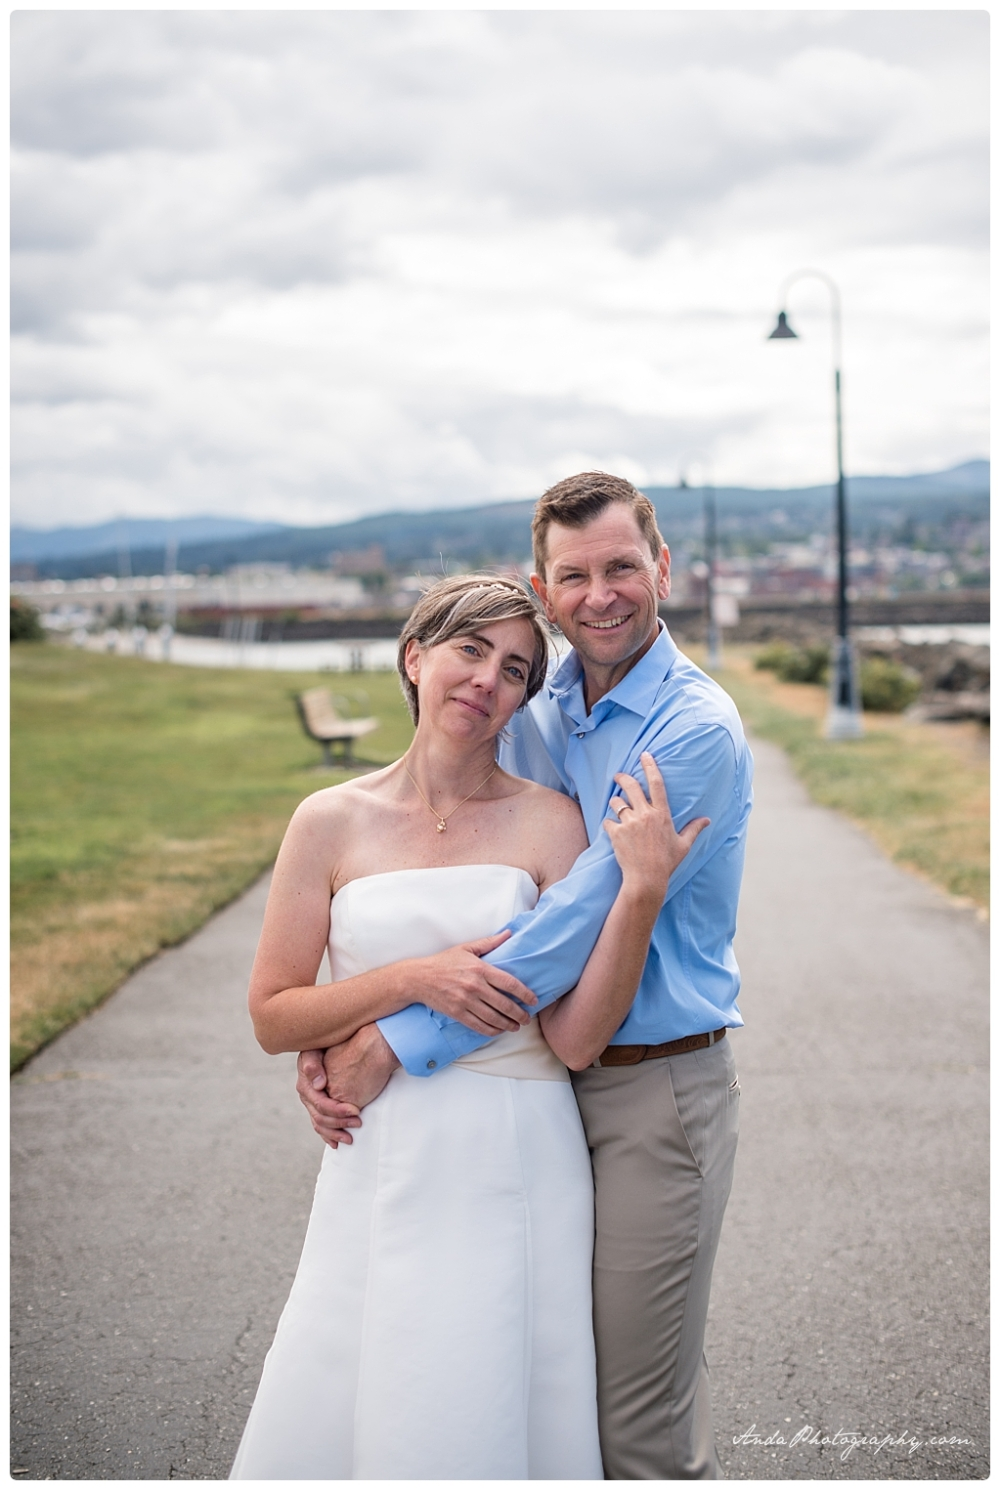 Anda Photography Bellingham wedding photographer seattle wedding photographer lifestyle wedding photographer Zuanich Park wedding Little Squalicum Boathouse wedding_0024